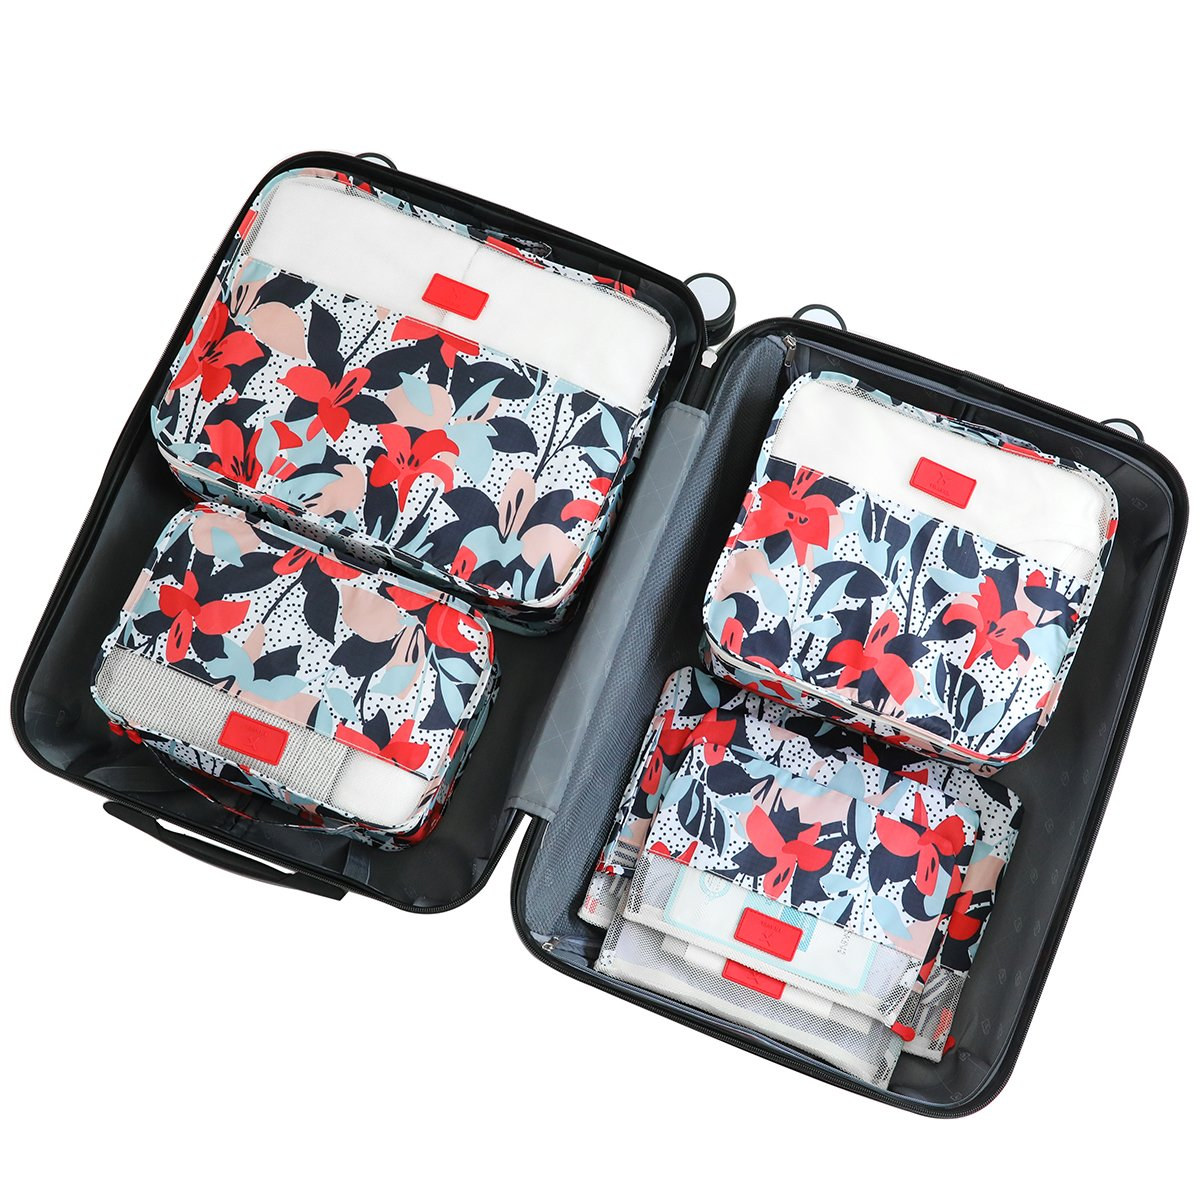 Belsmi 6 Set Packing Cubes - Waterproof Compression Bag Travel Luggage Organizer (Series A - Fire Flower)